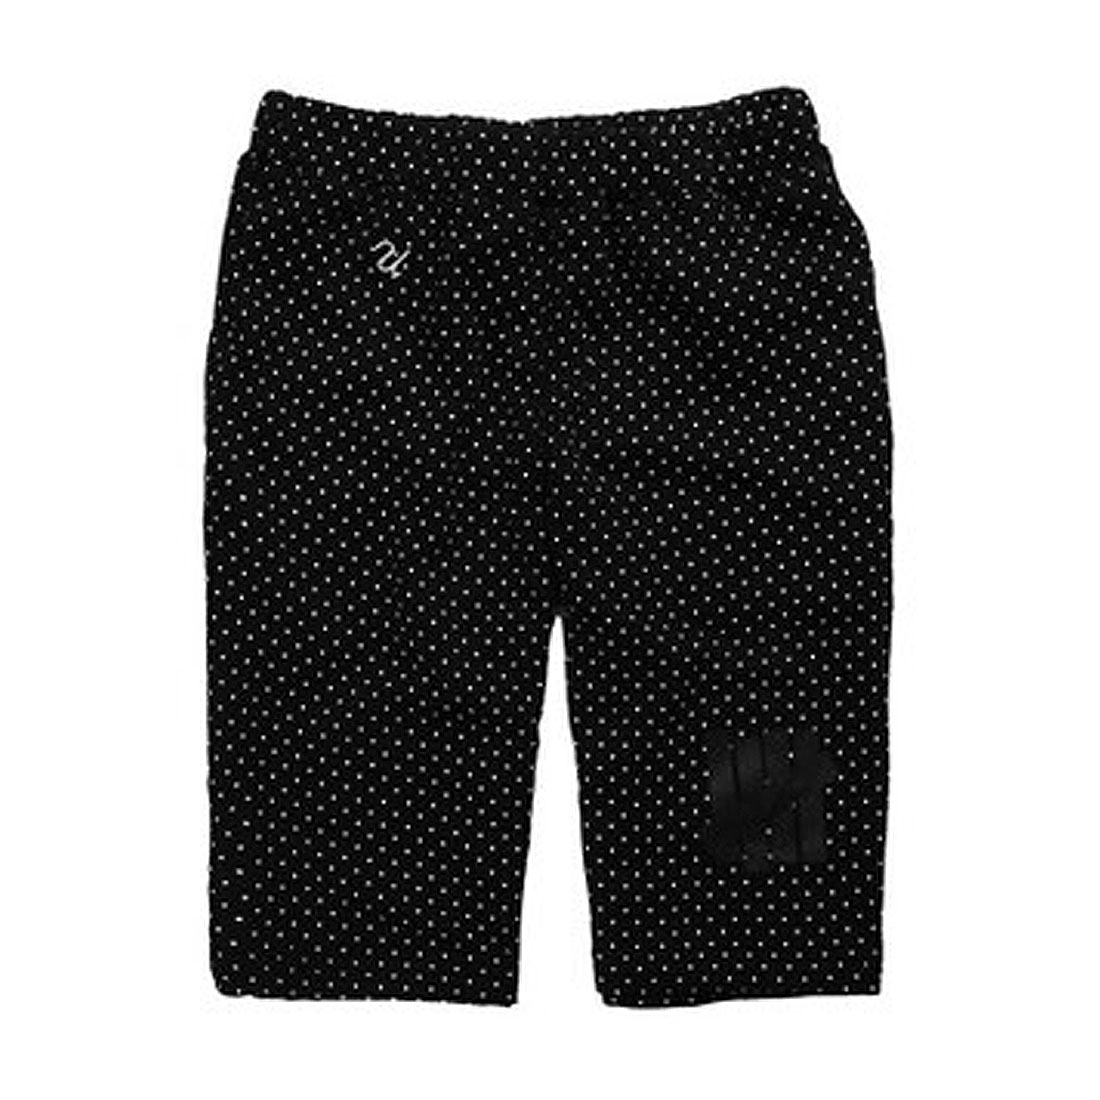 Fashional Elastic Waist Mini Dots Print Knee Length Pants Black W32 for Men